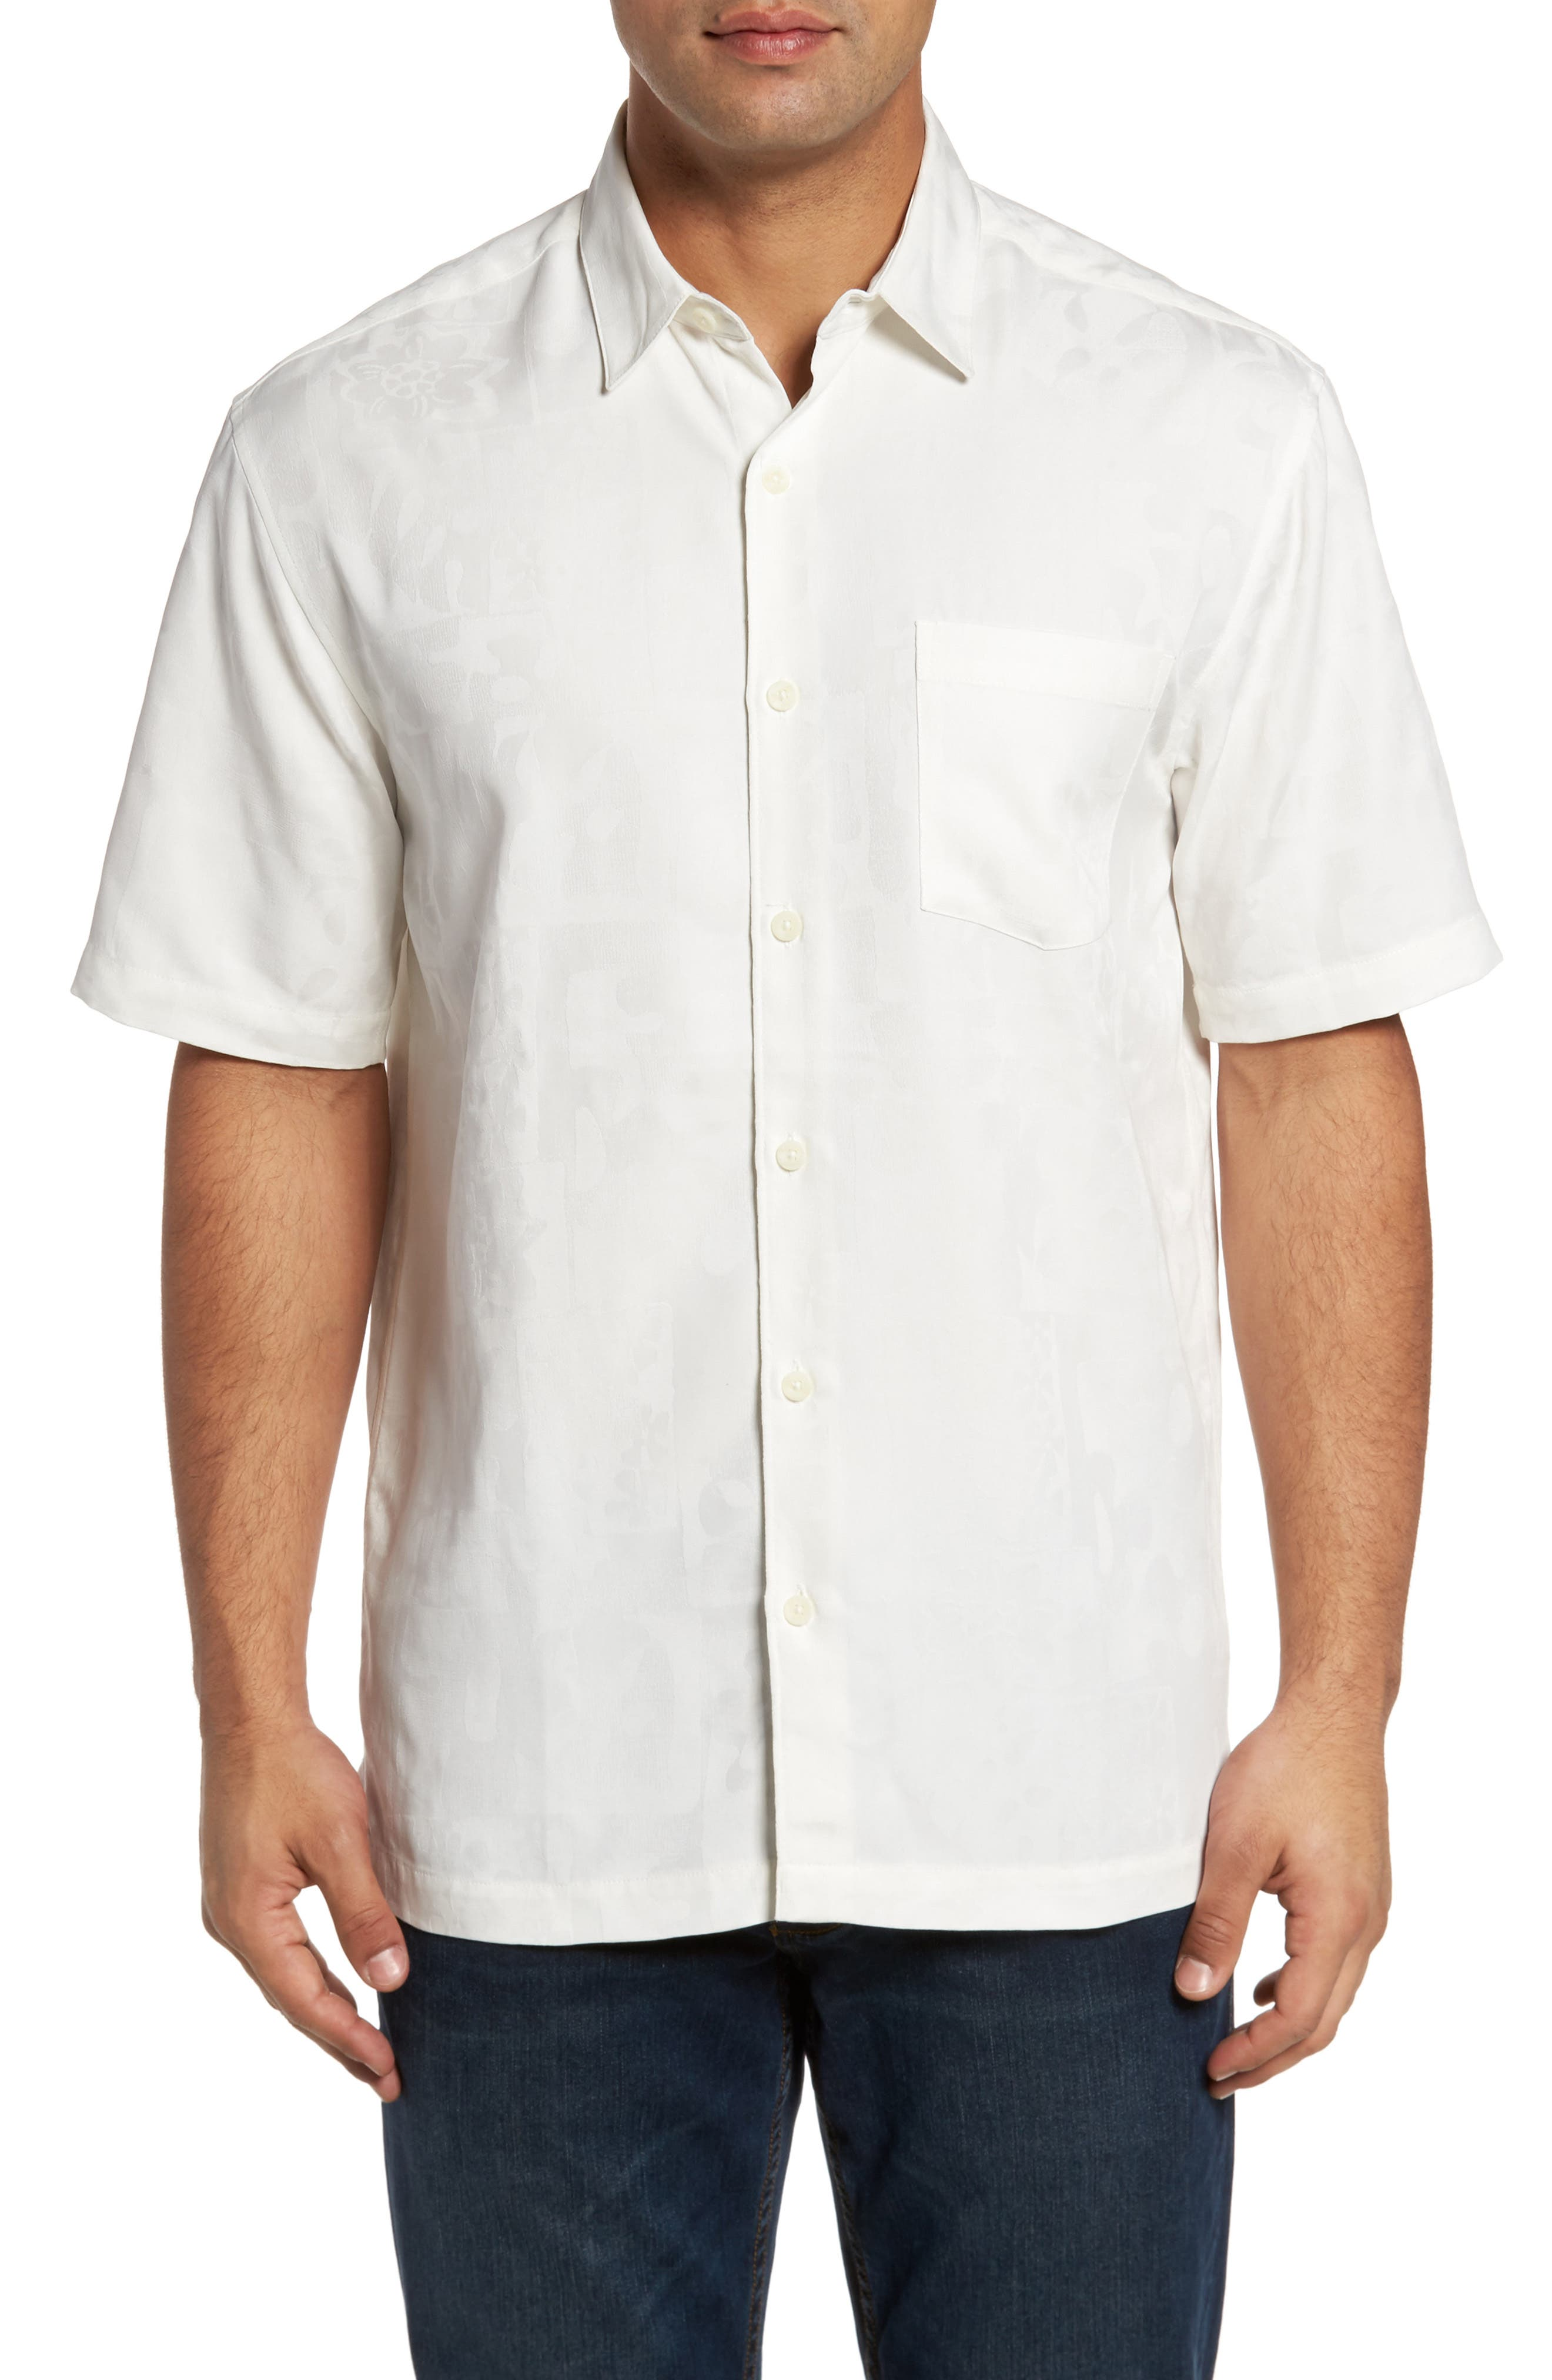 Alternate Image 1 Selected - Kahala Pahu Classic Fit Sport Shirt